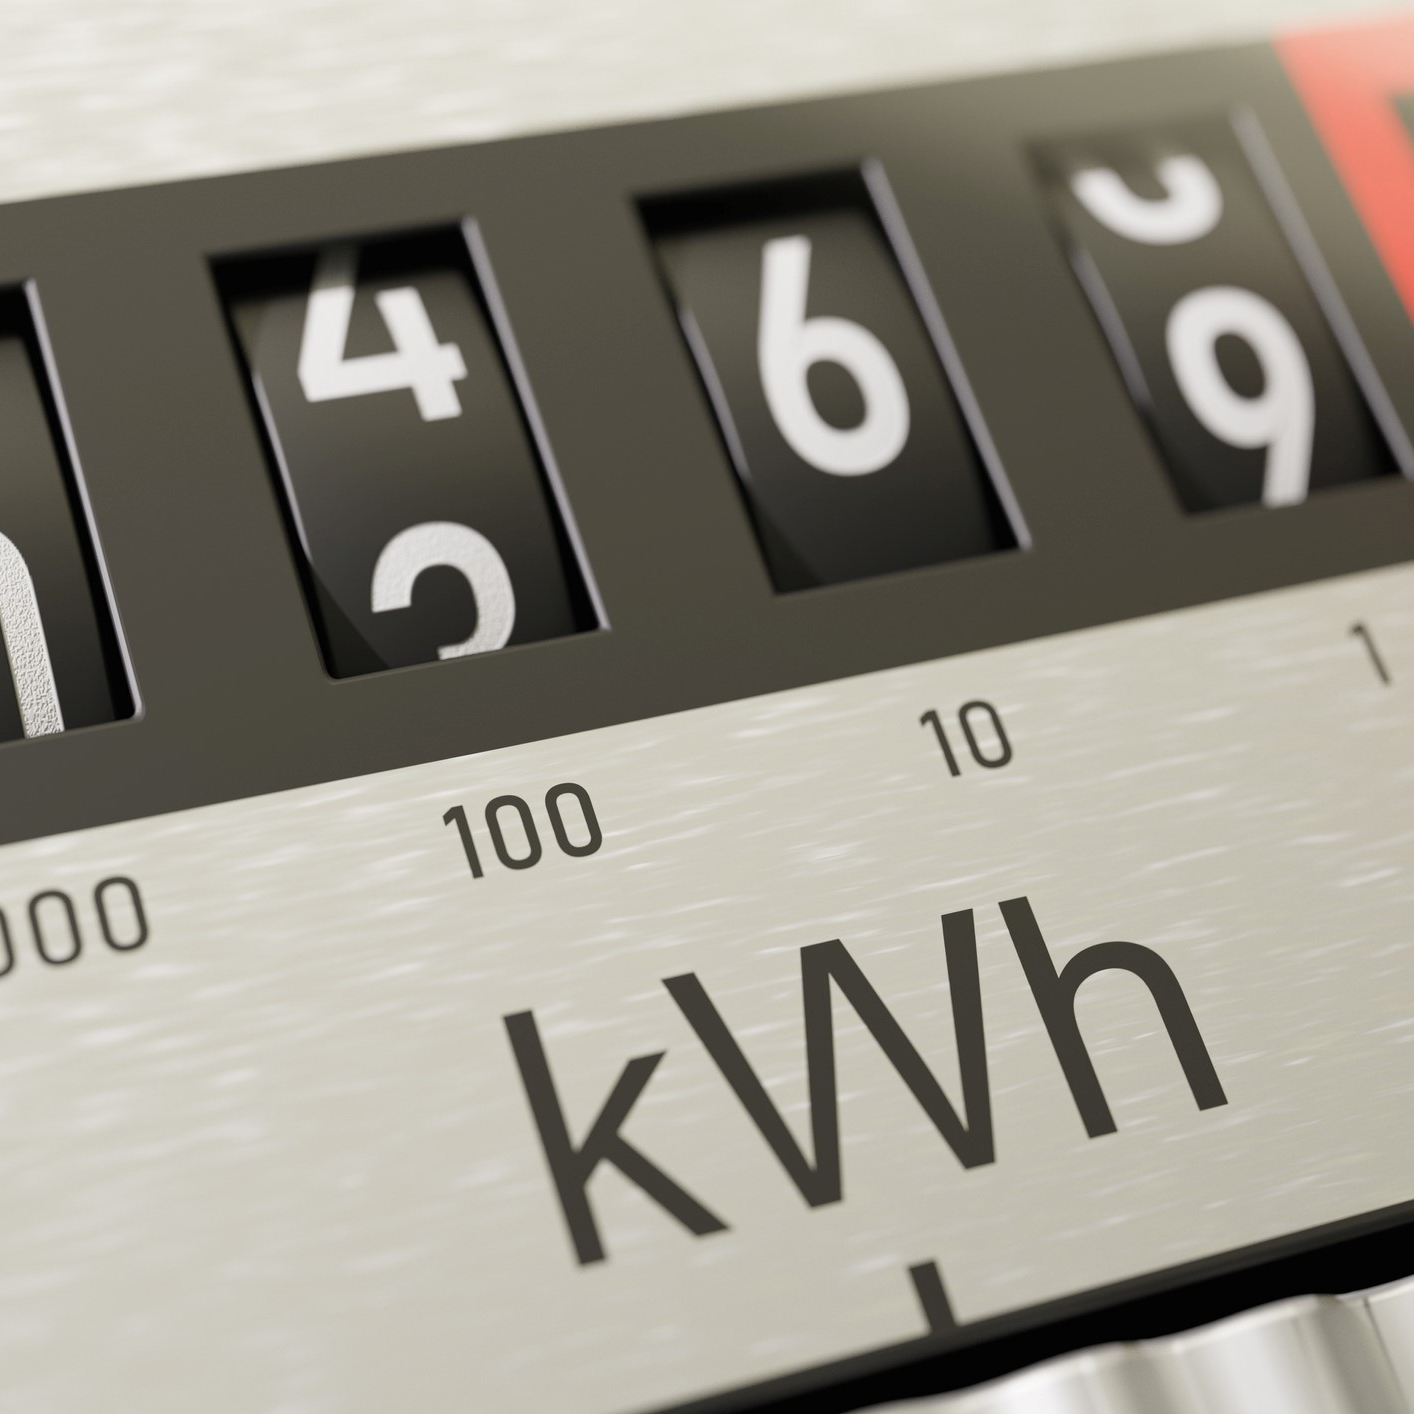 What's the Difference Between kWh and kW